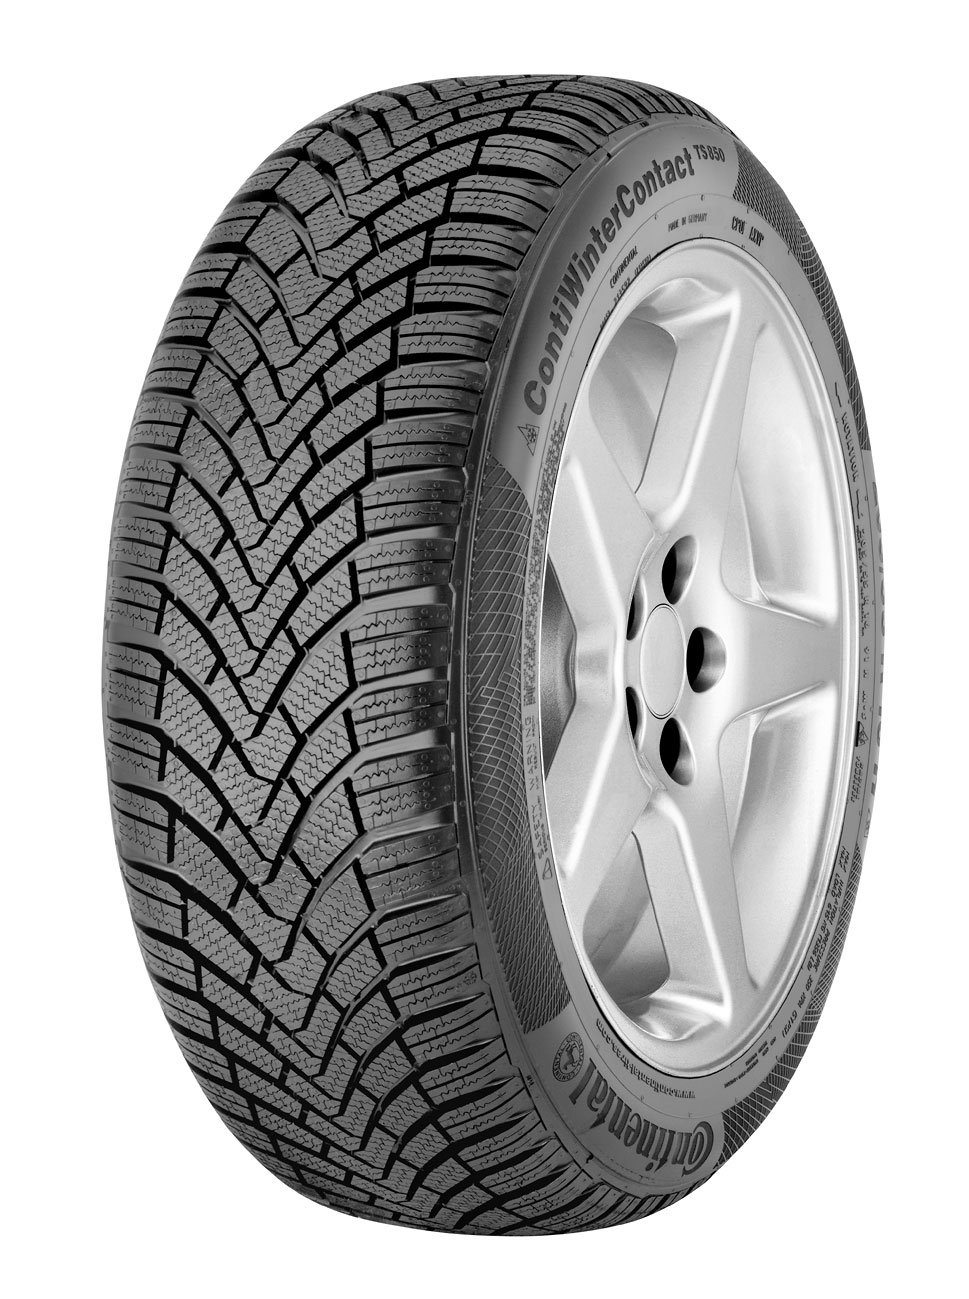 Pneu CONTINENTAL WINTER CONTACT TS850 195/65R15 91 T